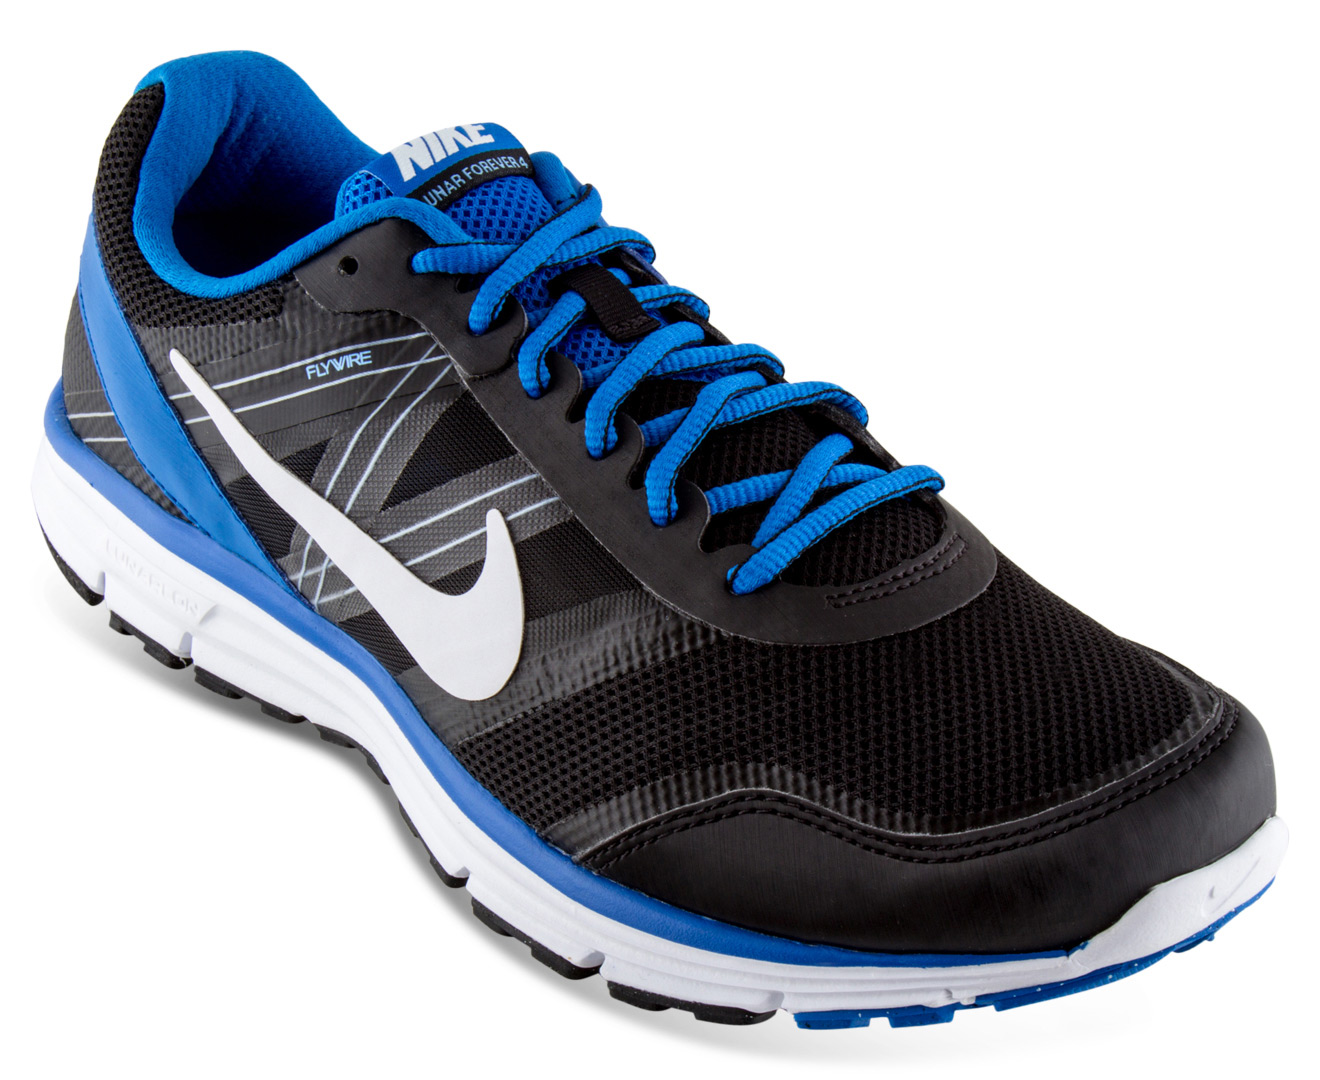 Nike Men's Lunar Forever 4 MSL Shoe - Black/Blue | Great daily deals at  Australia's favourite superstore | Catch.com.au